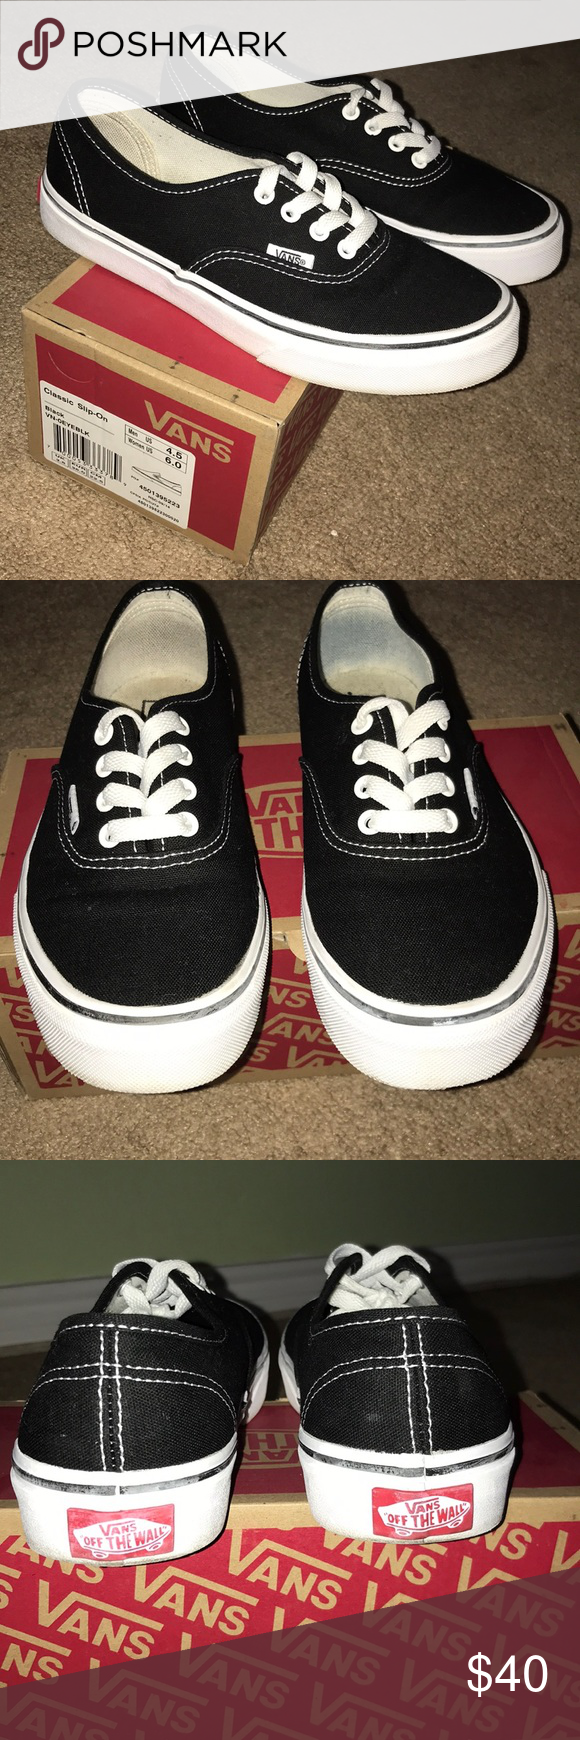 bfe5fec413e12 Black   white Authentic Vans. Size 6 women. 4 kids. Vans Shoes Sneakers